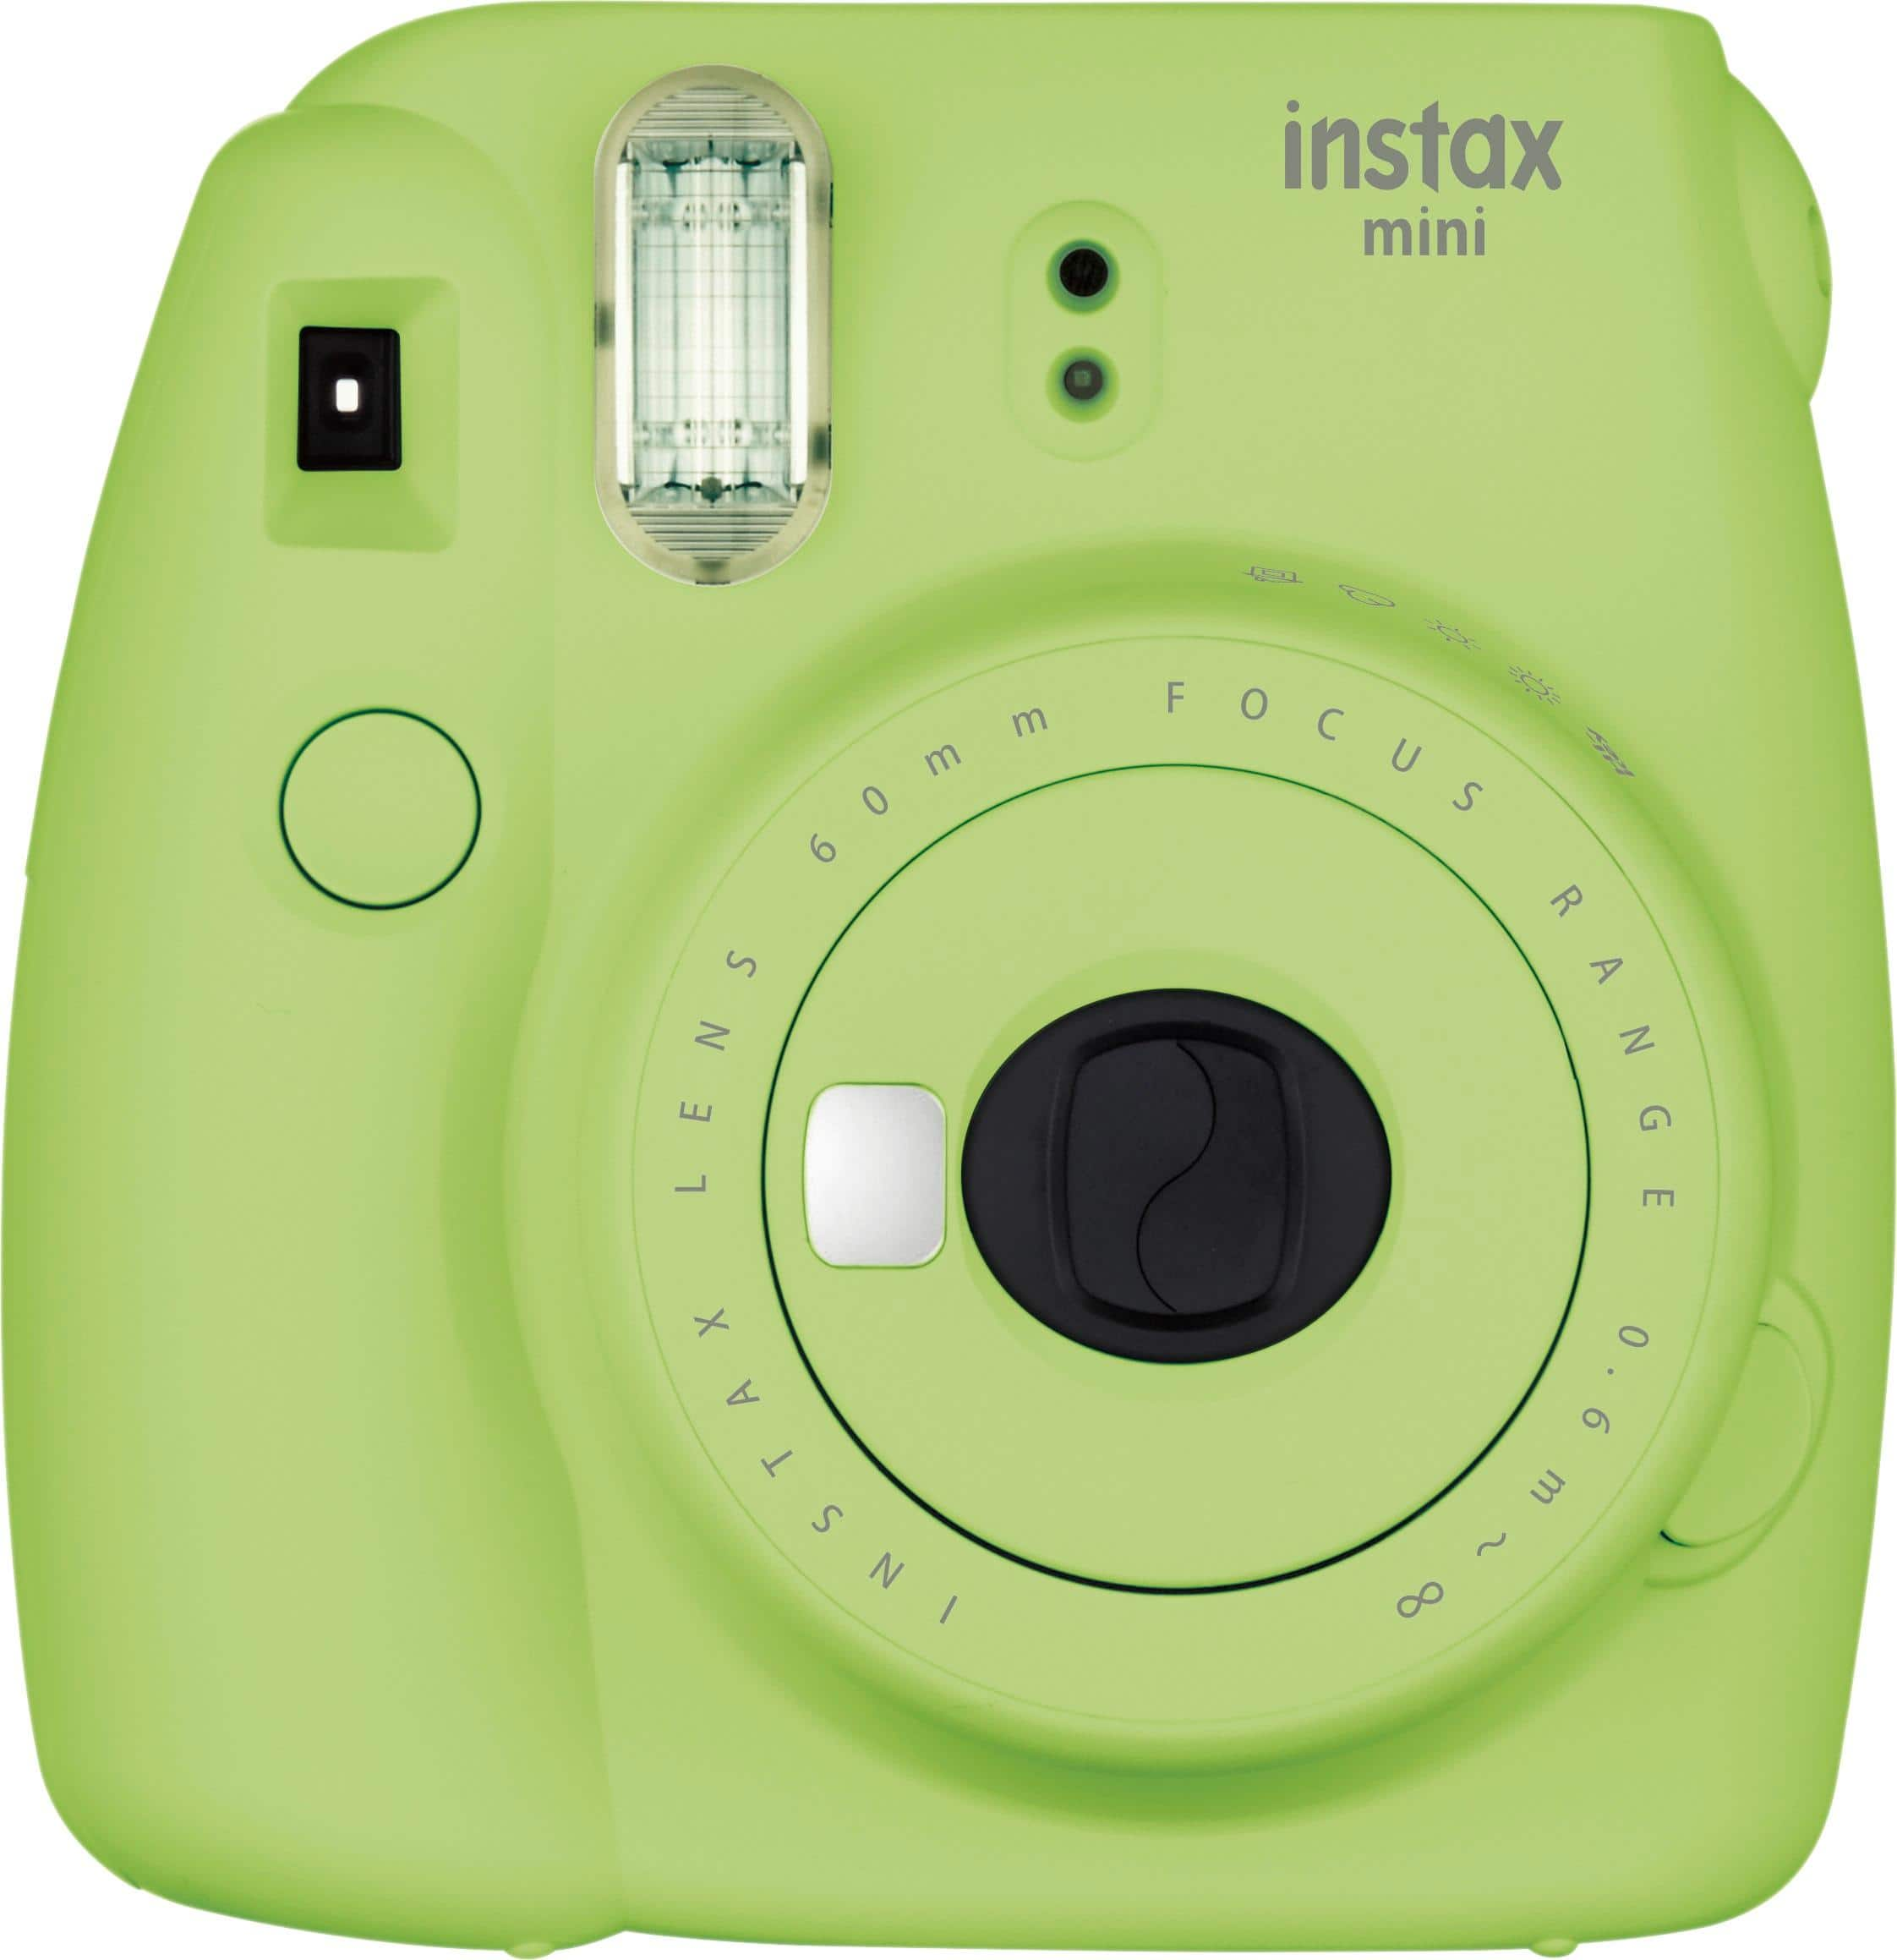 Fujifilm Instax Mini 9 Instant Film Camera Only $39.99 Shipped (Regularly $70)